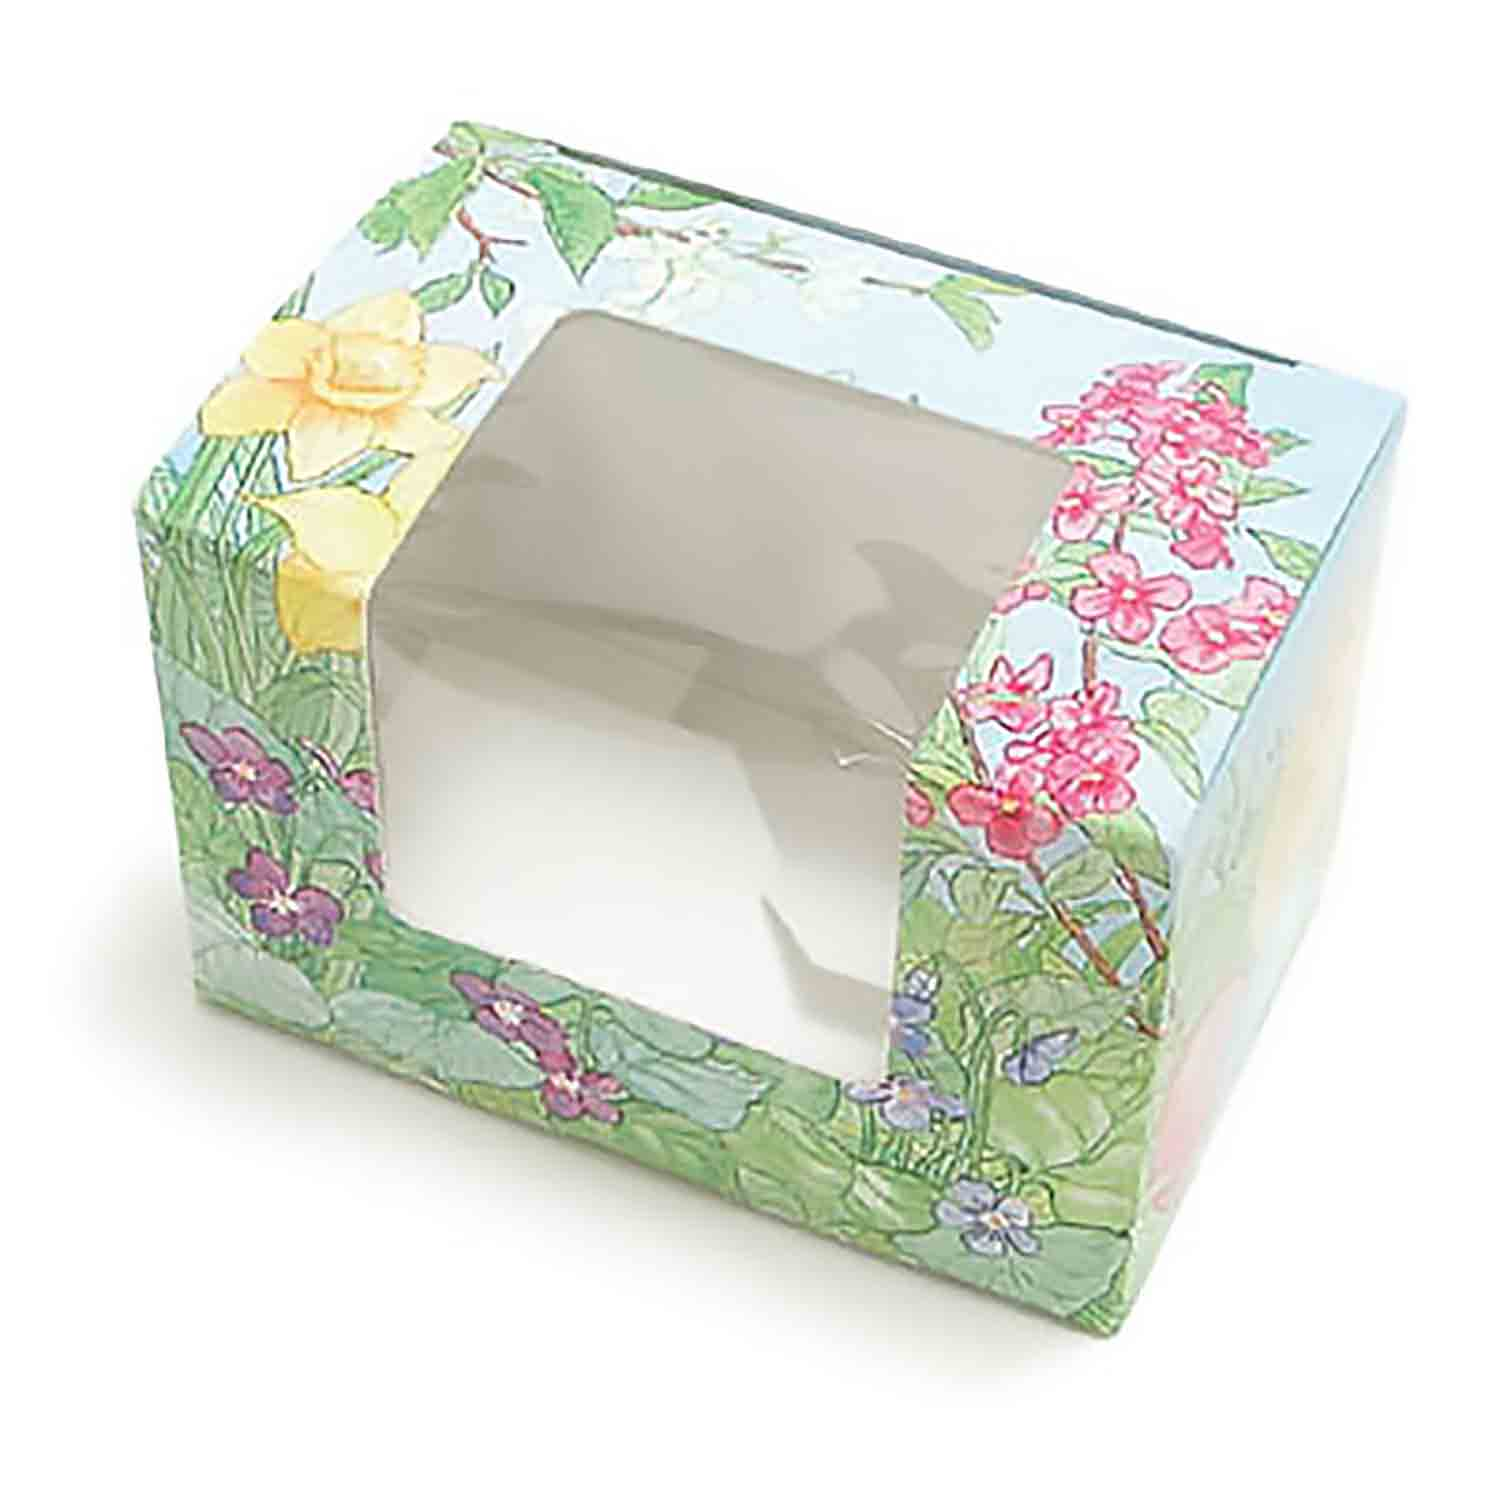 1/4 lb. Easter Garden Egg Candy Box with Window